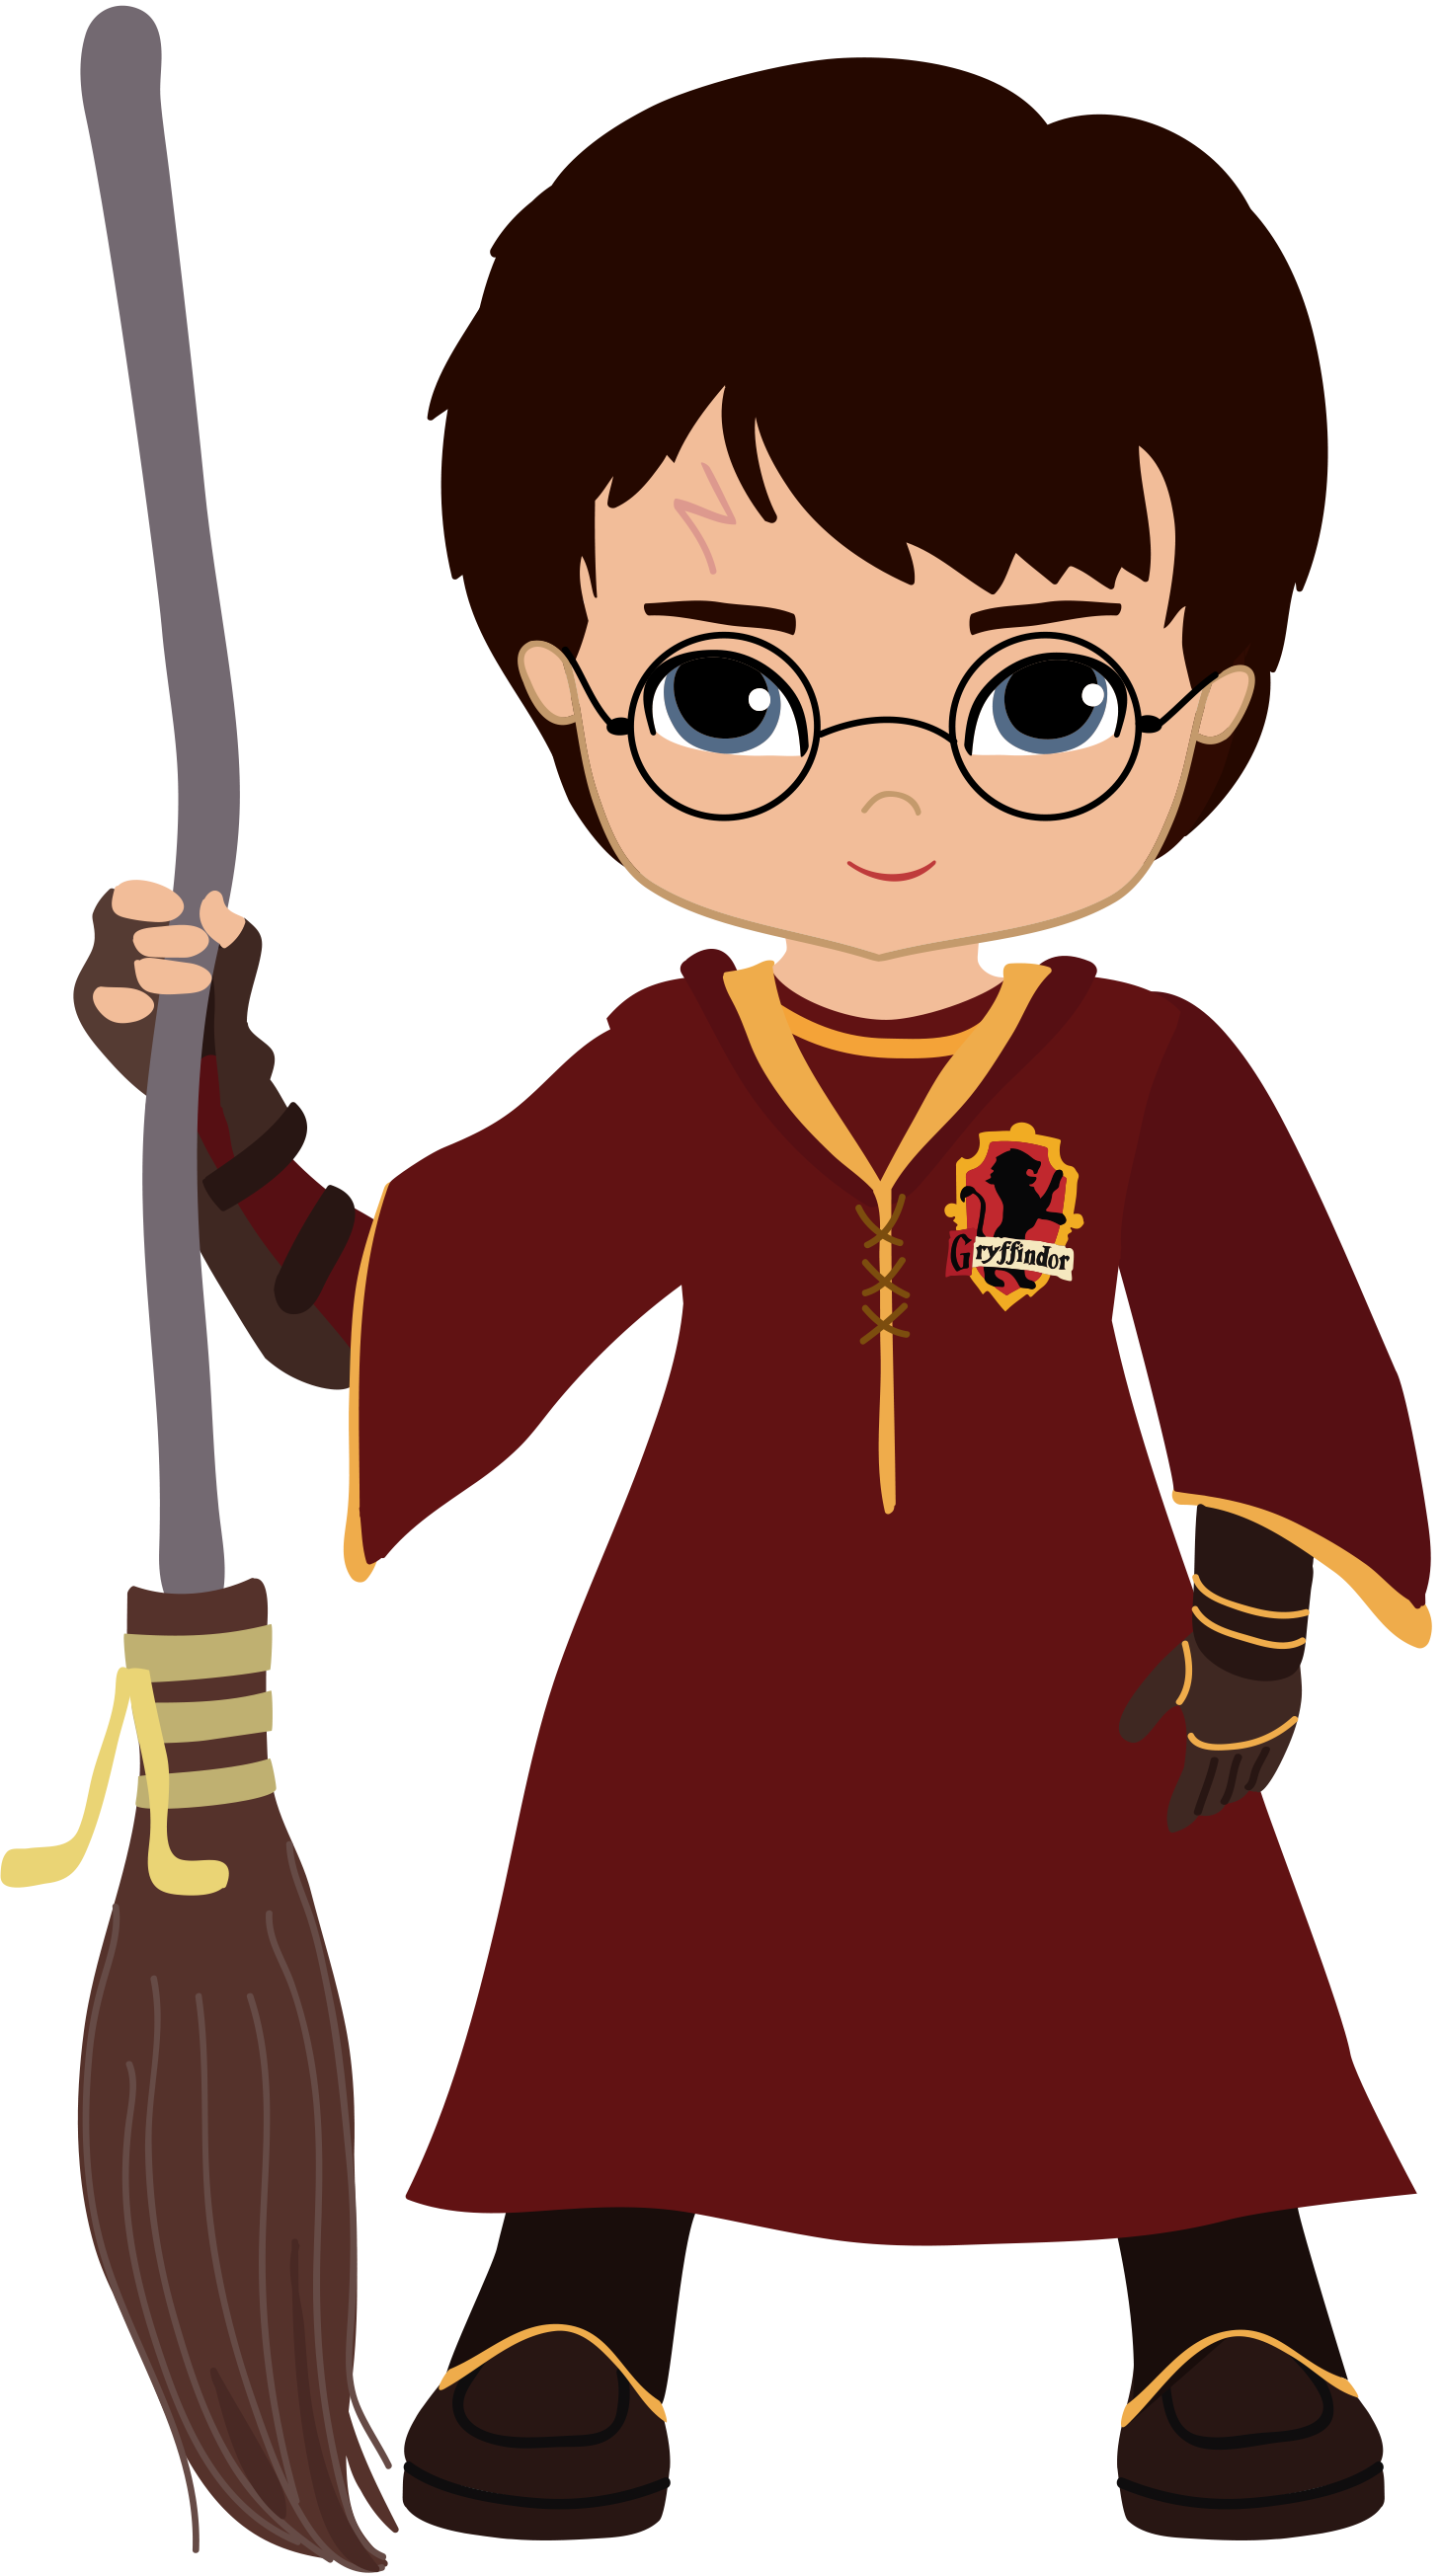 Harry potter character clipart graphic transparent library An Overview of the Harry Potter Books and Universe | Clip art, Tes ... graphic transparent library